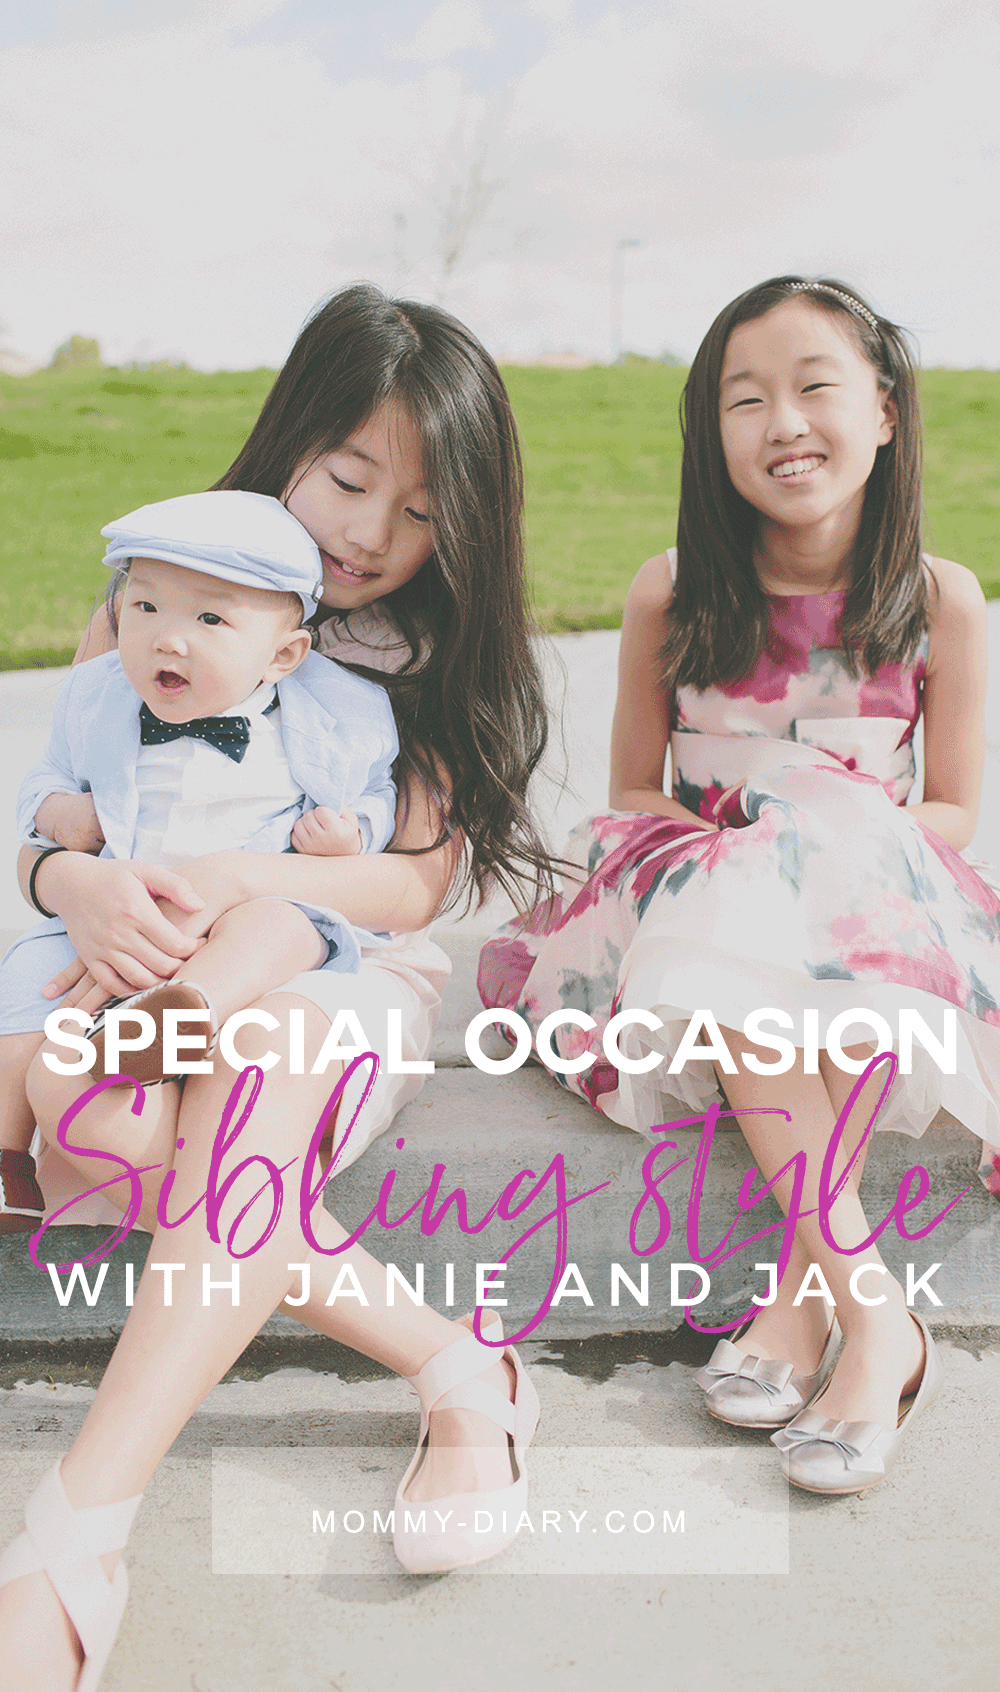 1a57c001559a Special Occasion Sibling Style With Janie And Jack | Mommy Diary ®